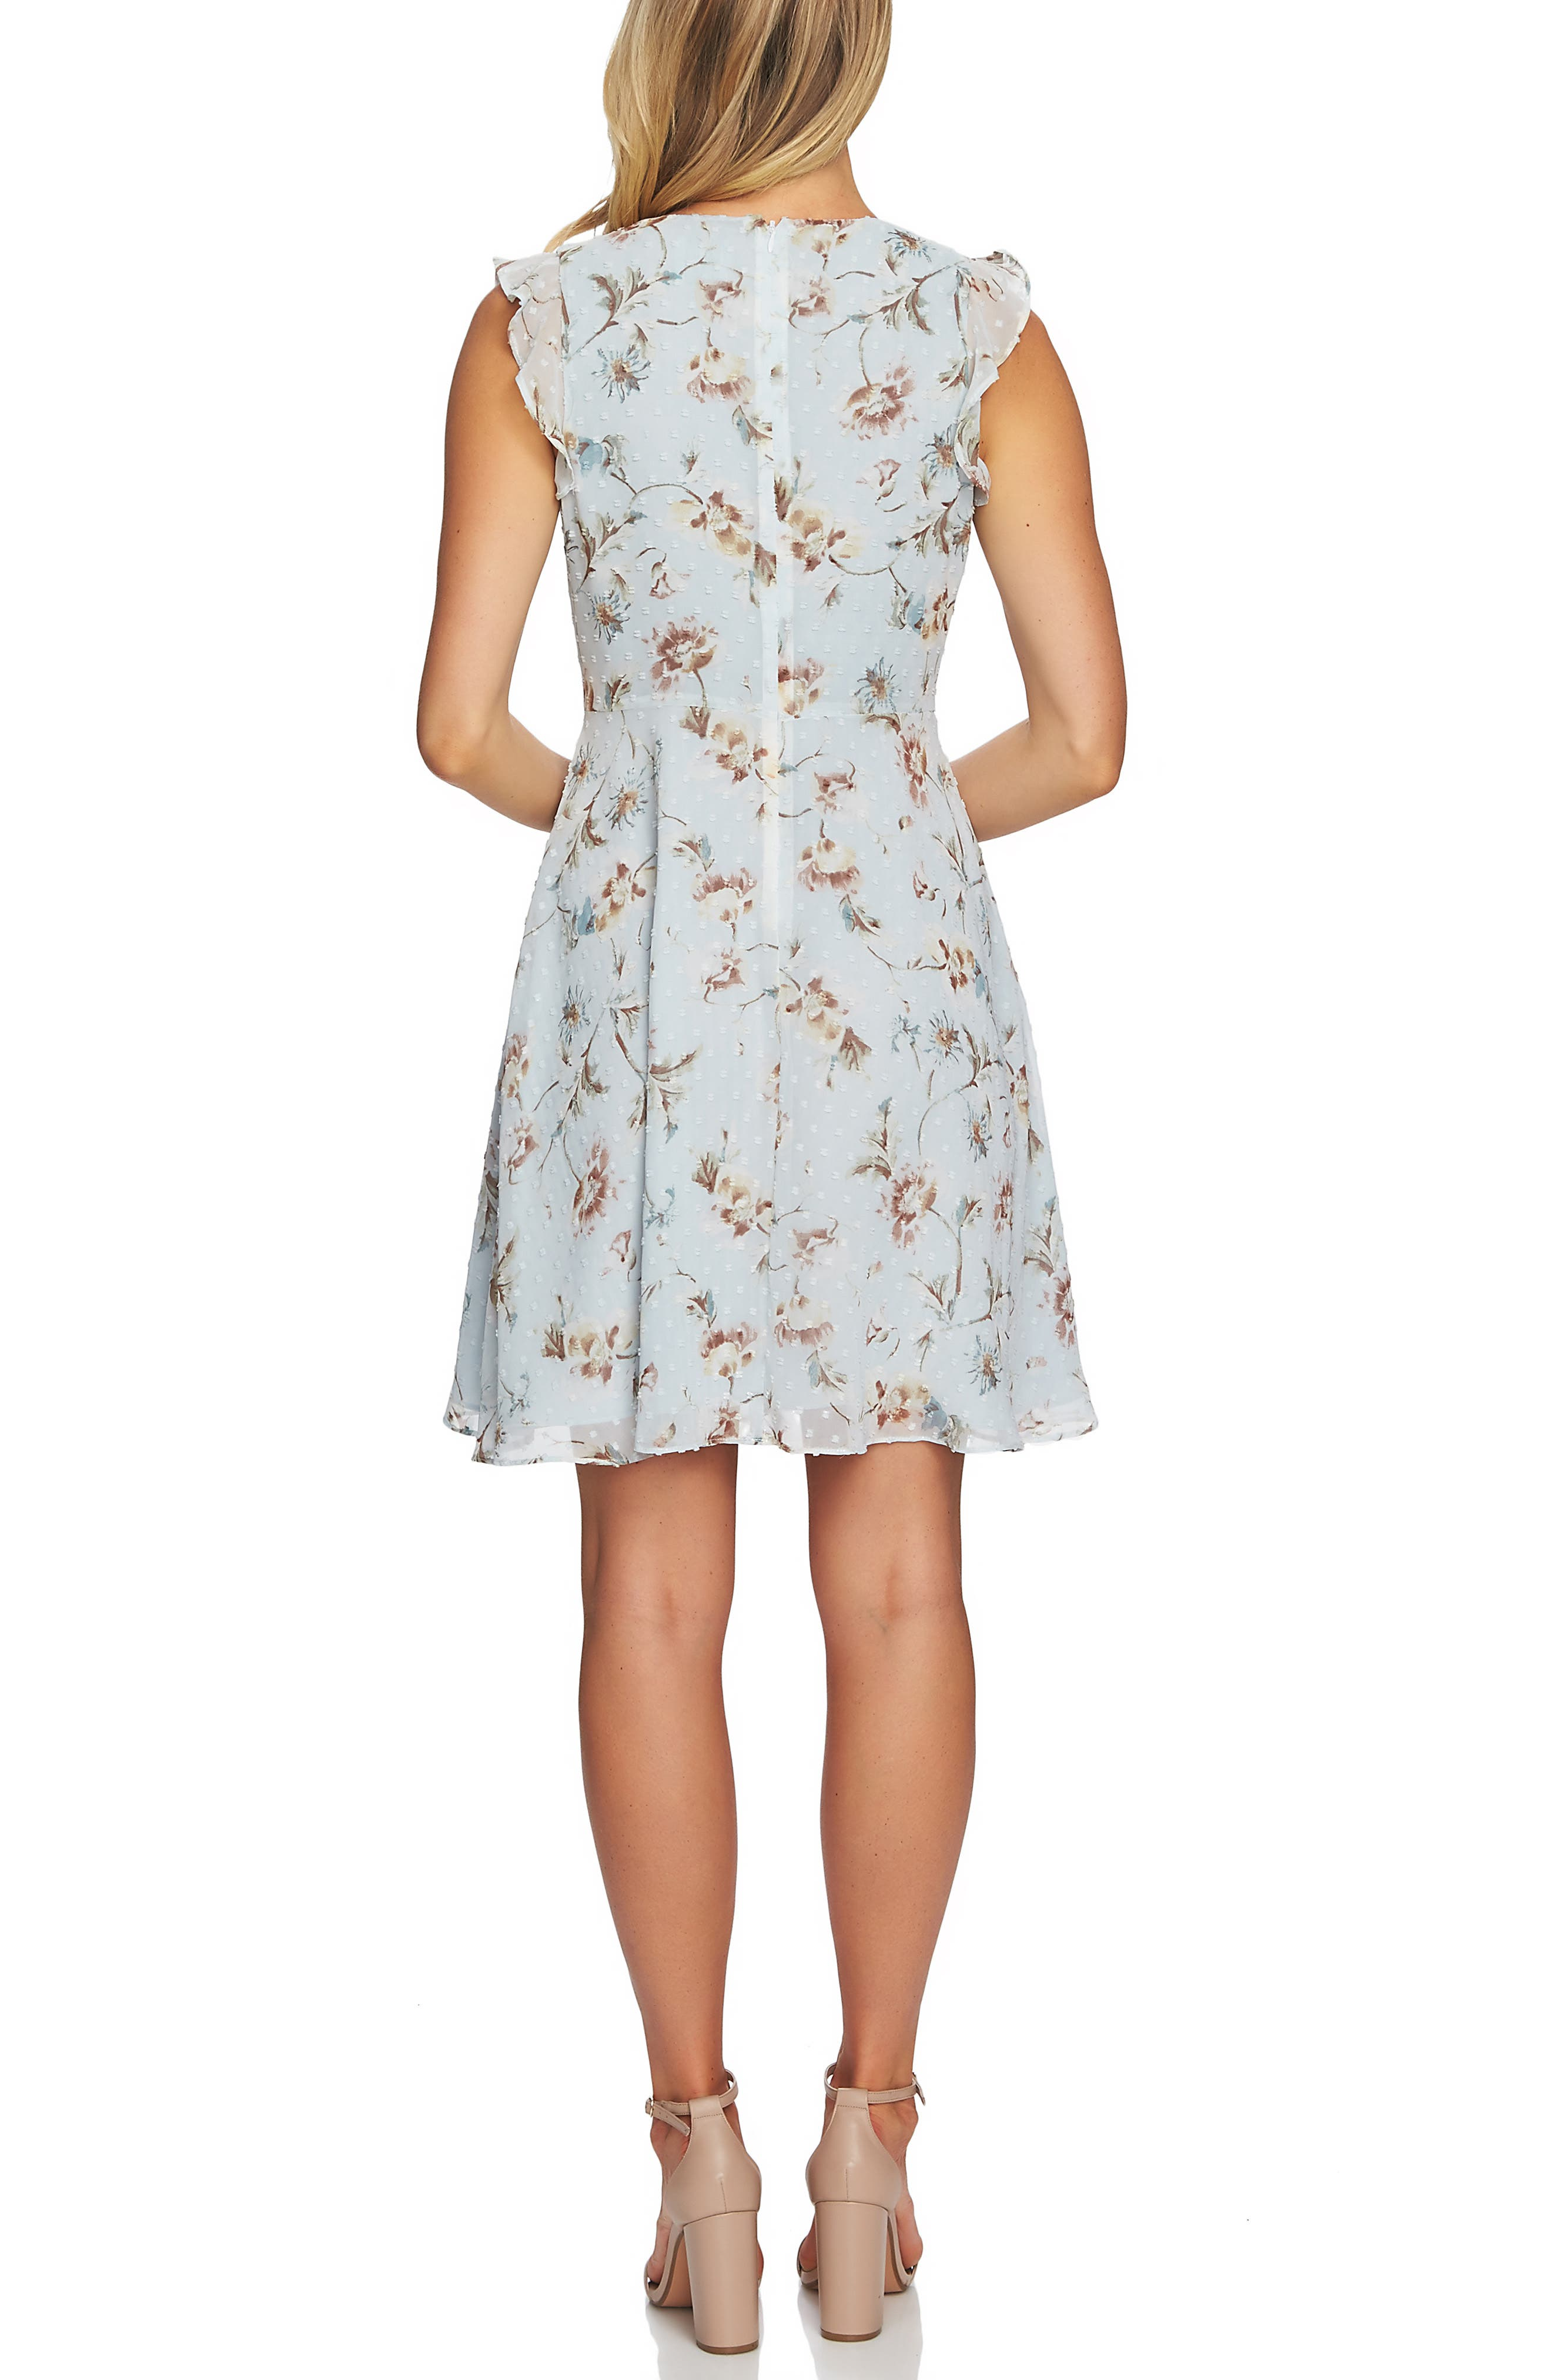 CECE, Duchess Floral Print Flutter Sleeve Dress, Alternate thumbnail 2, color, PEARL DROP